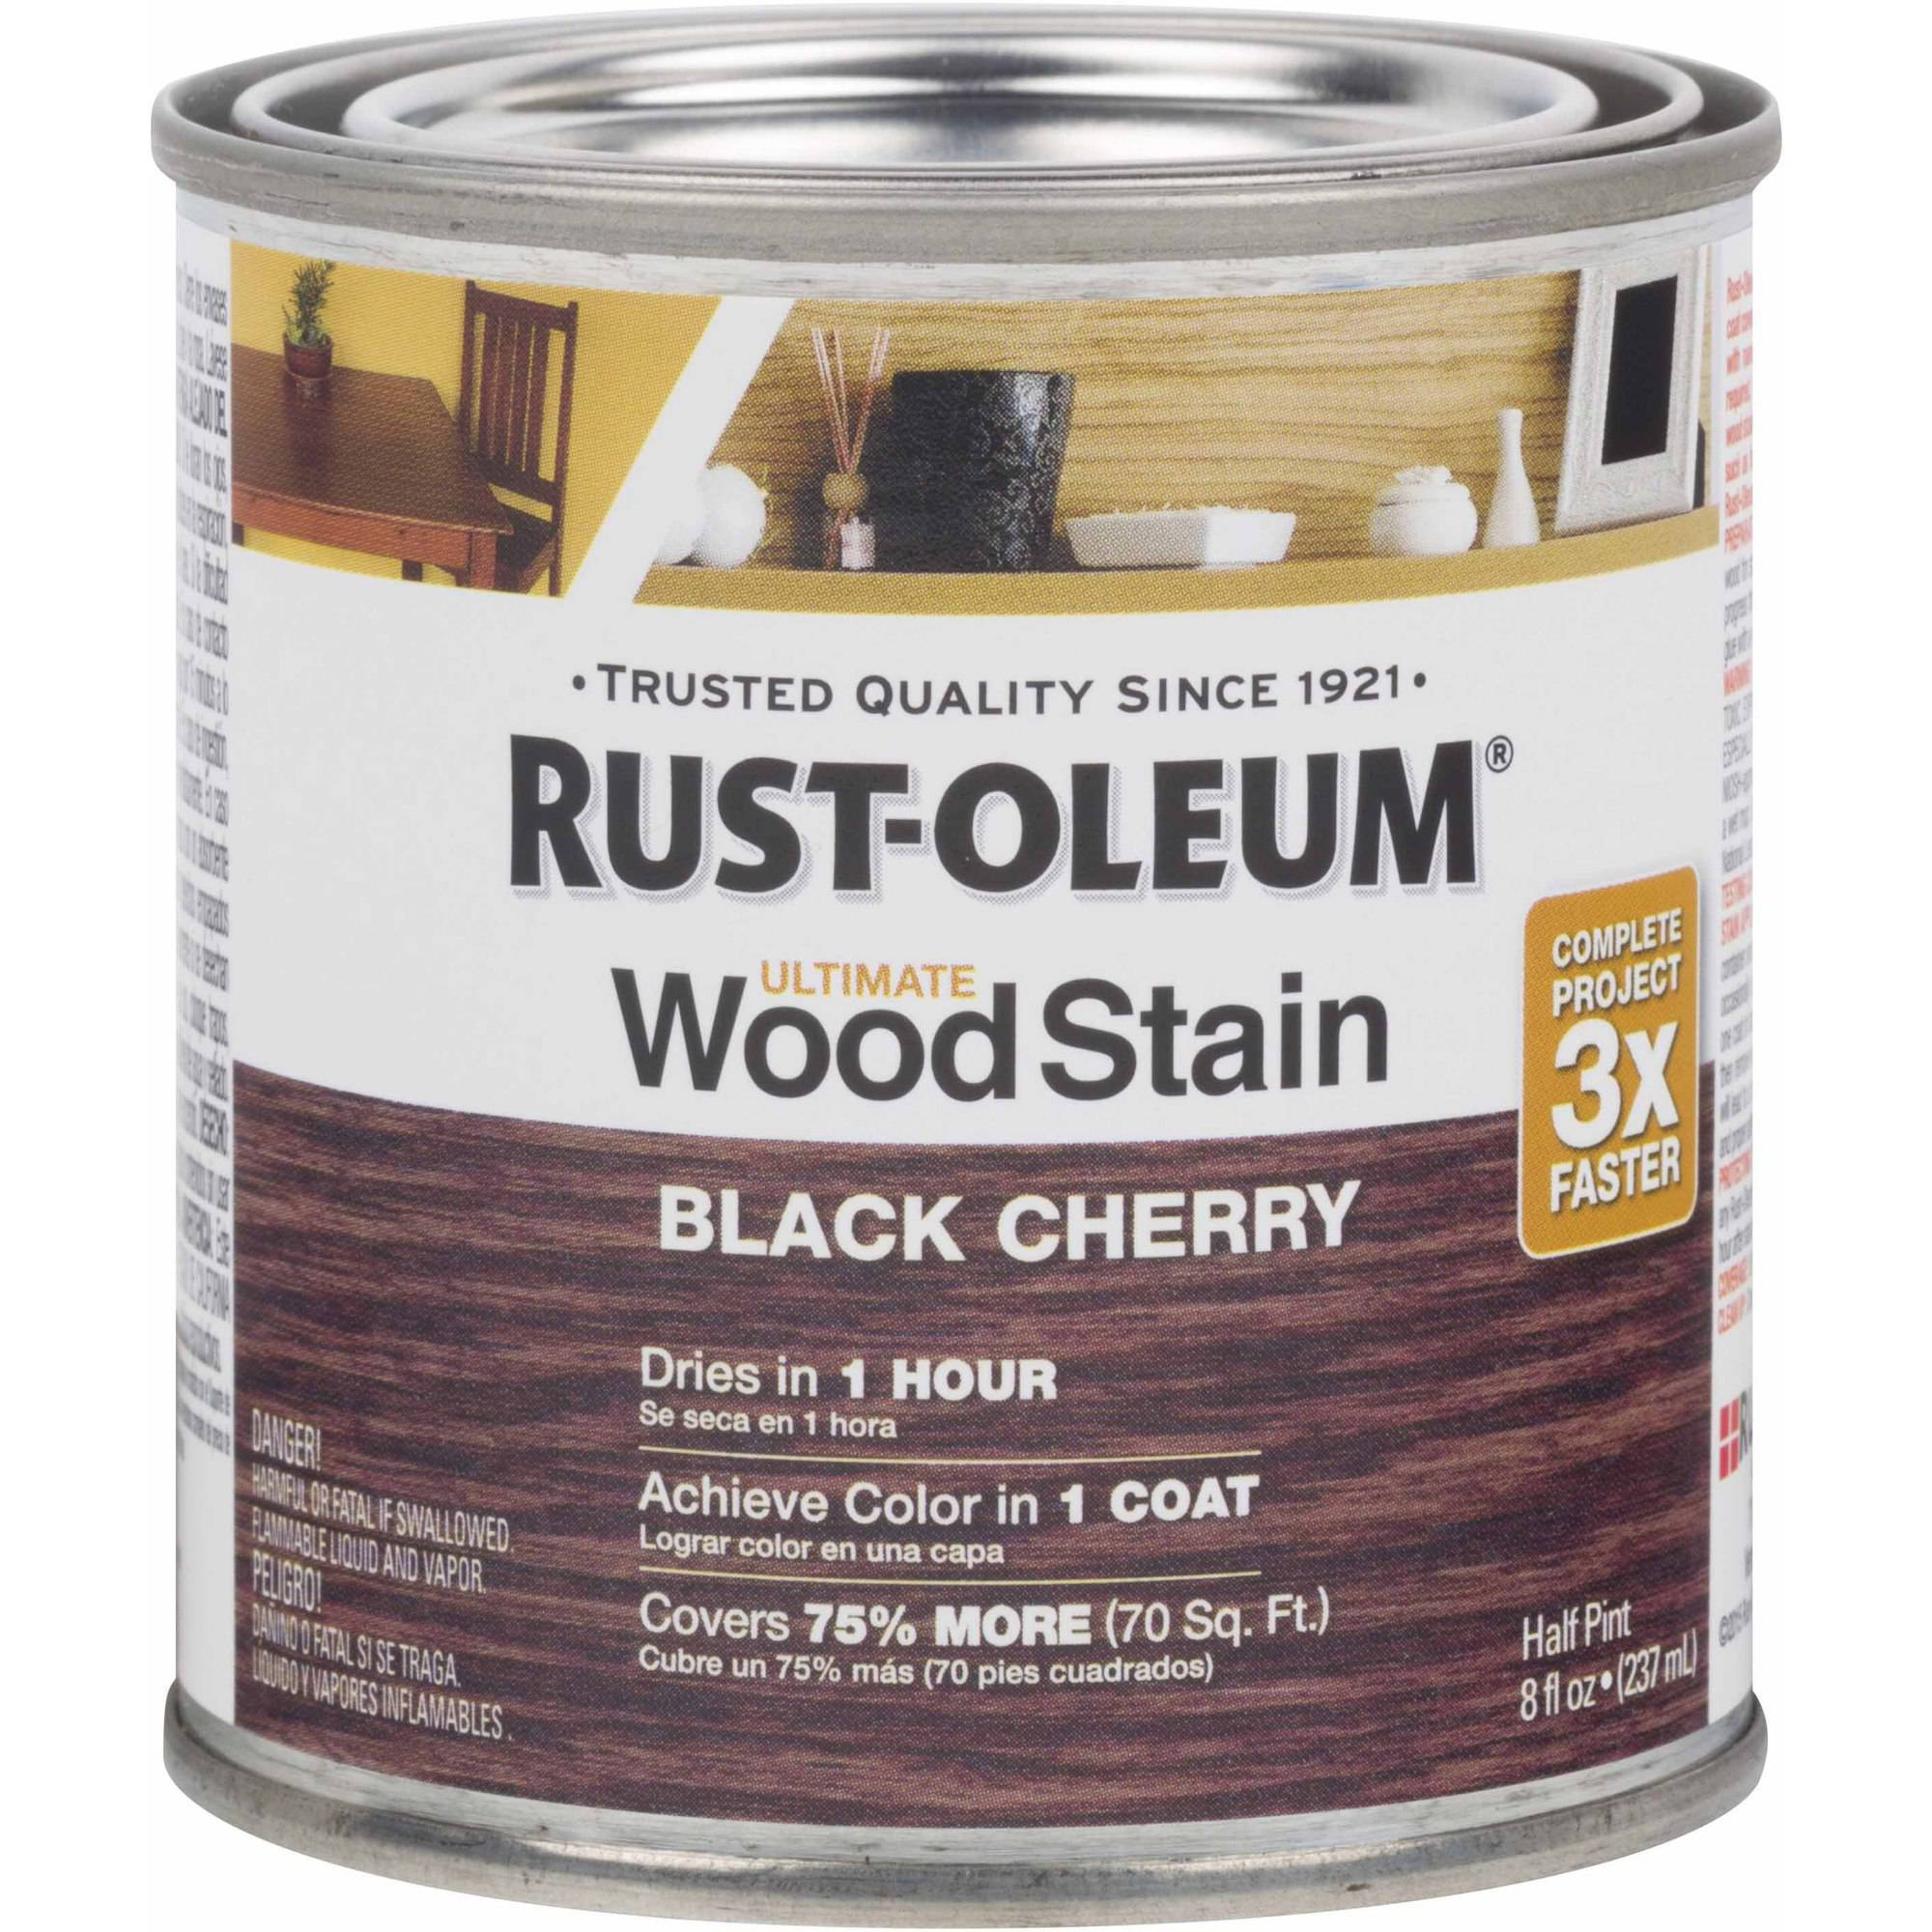 Rust-Oleum Ultimate Wood Stain Half-Pint, Black Cherry